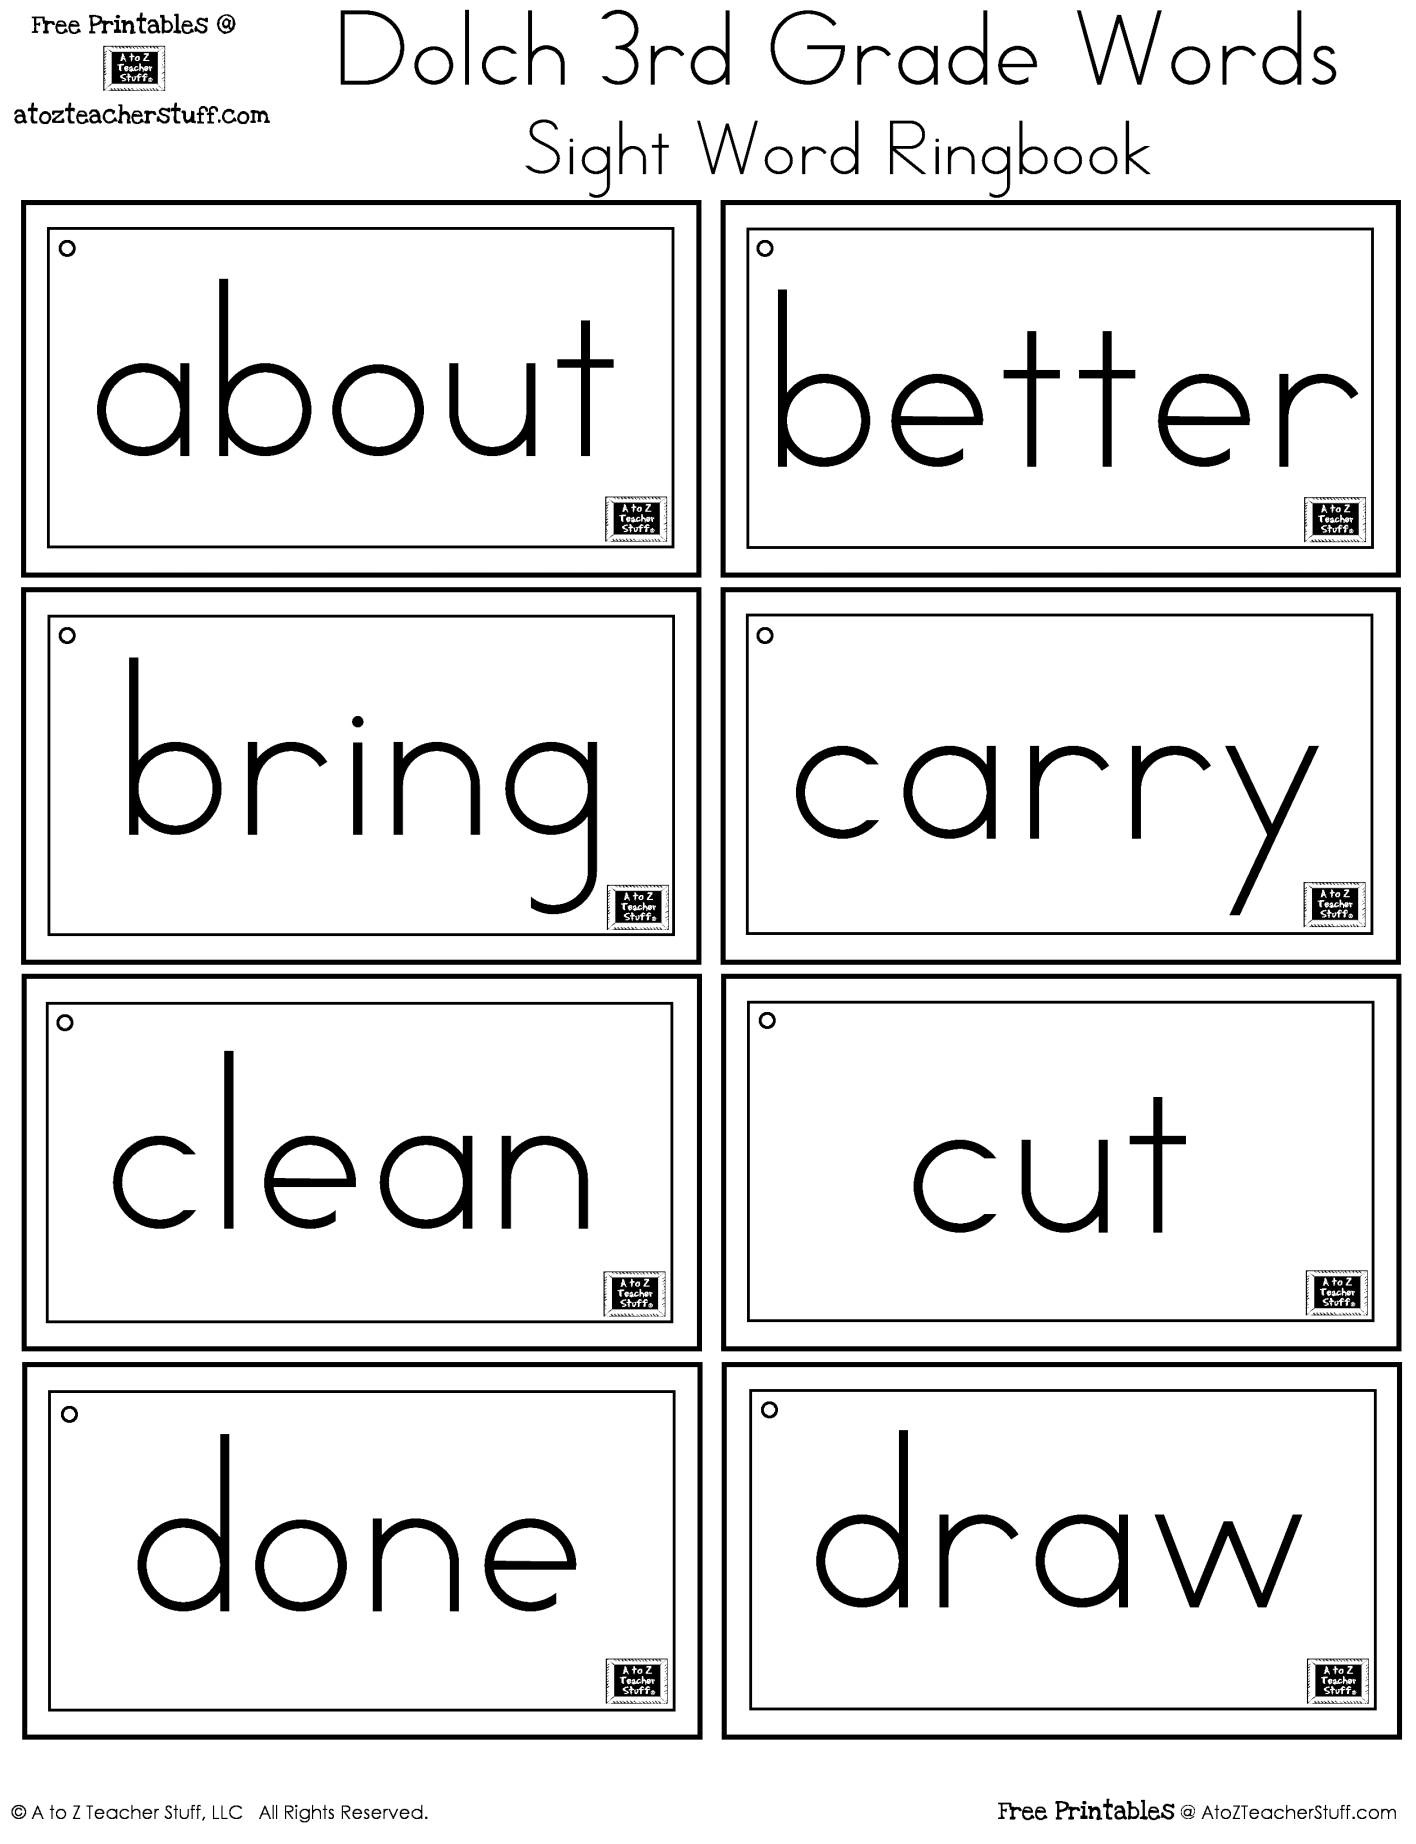 photo about Printable Sight Word named 3rd Quality Dolch Sight Phrases Ring E book A in direction of Z Instructor